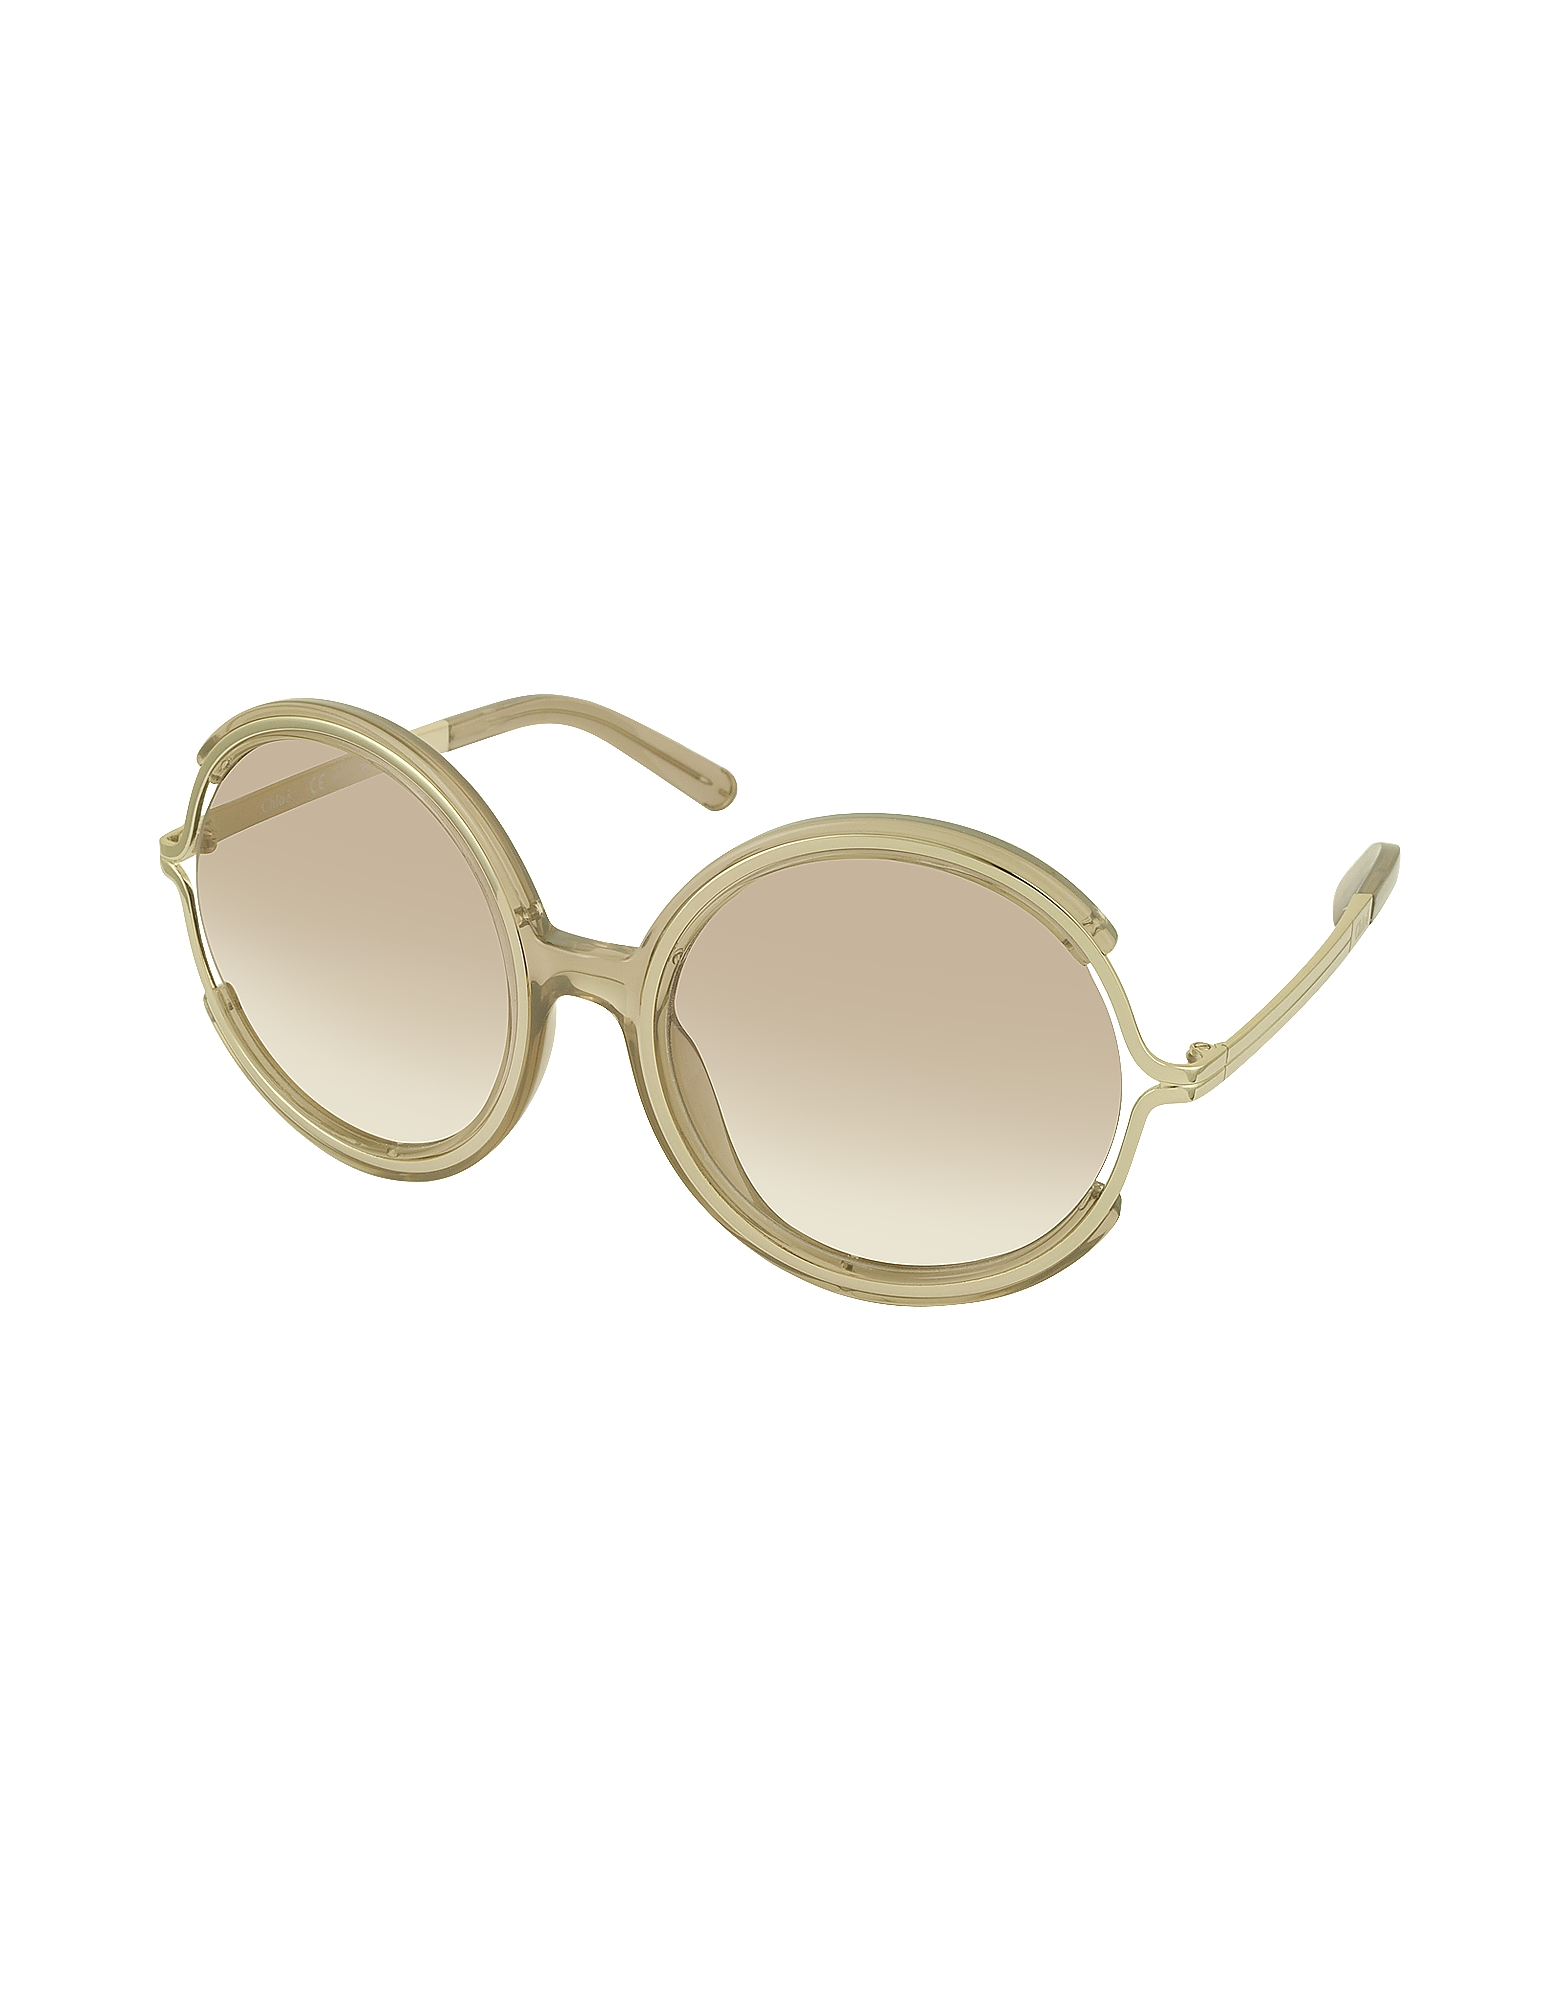 JAYME CE 708S 272 Light Brown Acetate and Gold Metal Round Women's Sunglasses от Forzieri.com INT